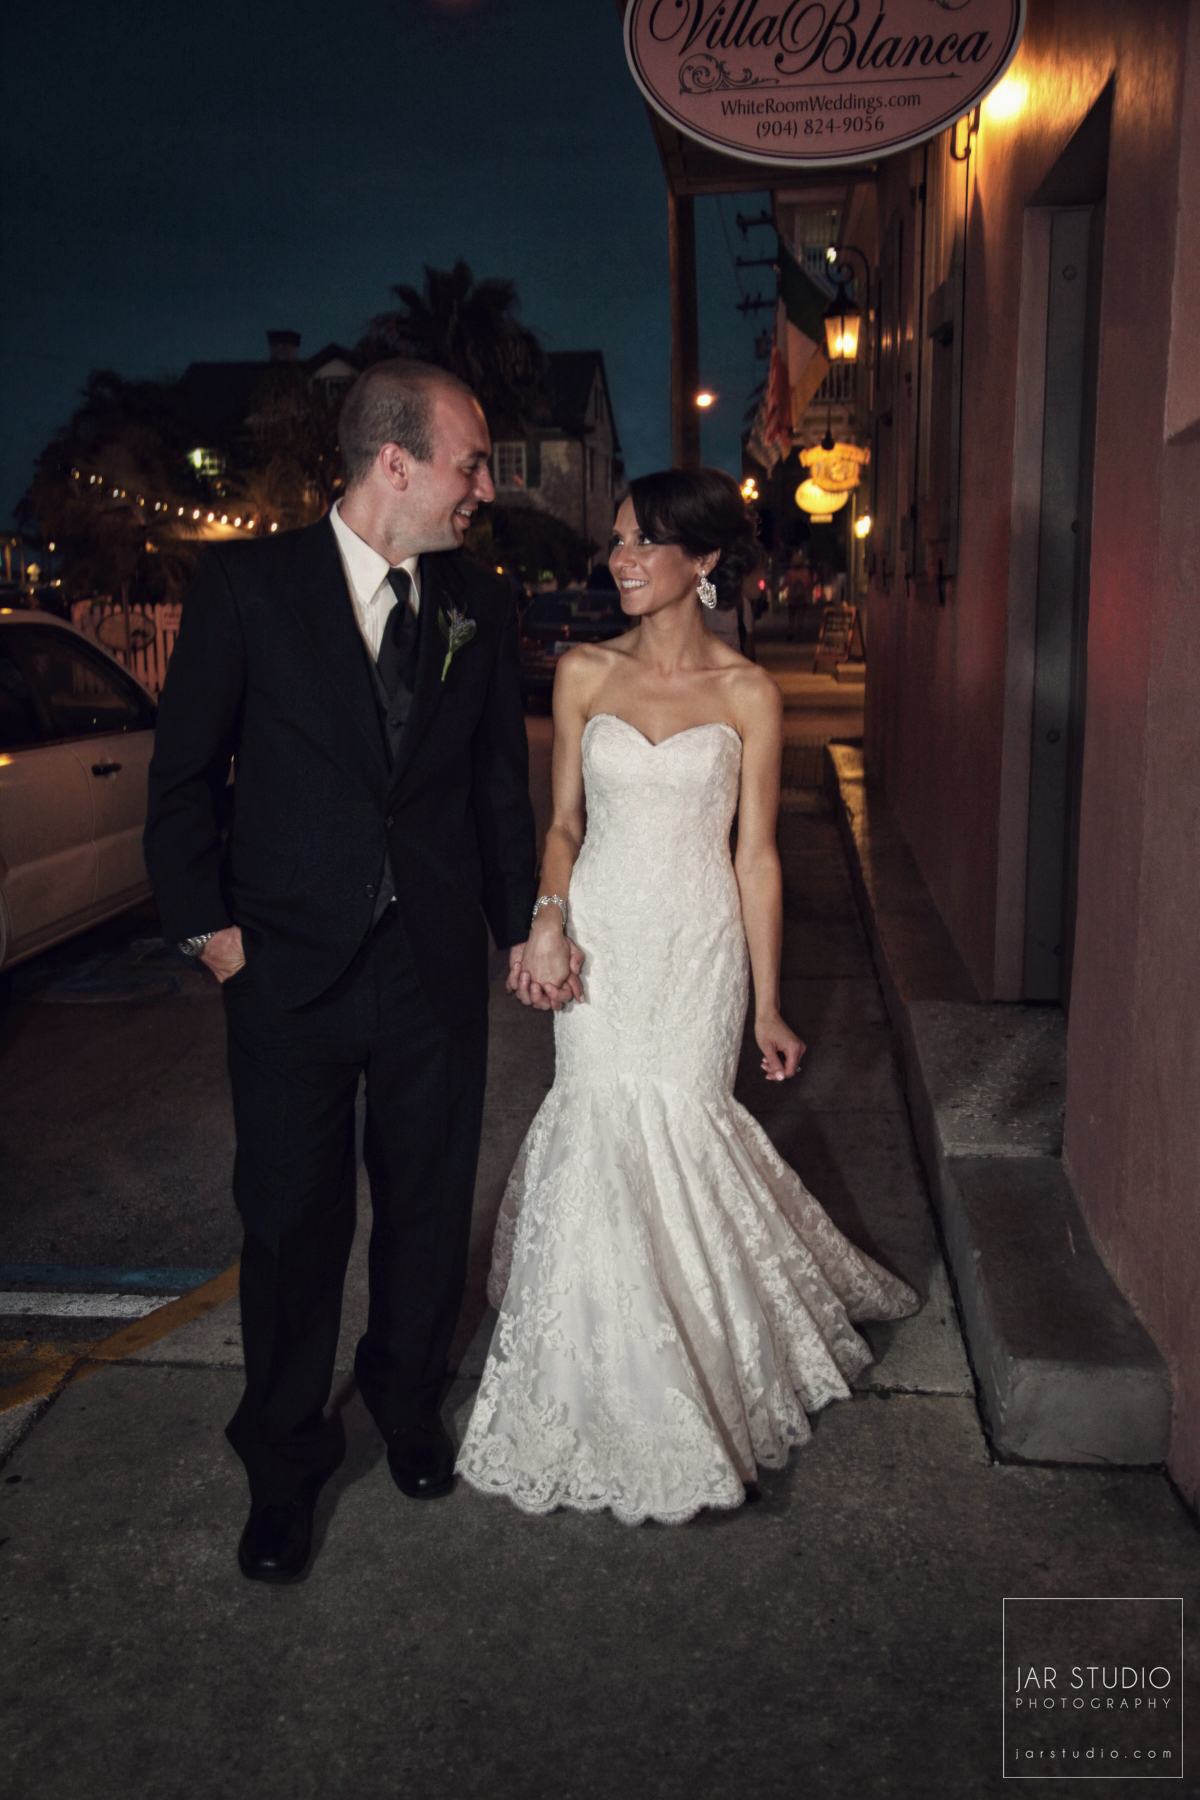 36-downtown-st.augustine-wedding-photographer-jarstudio-orlando-fl.JPG